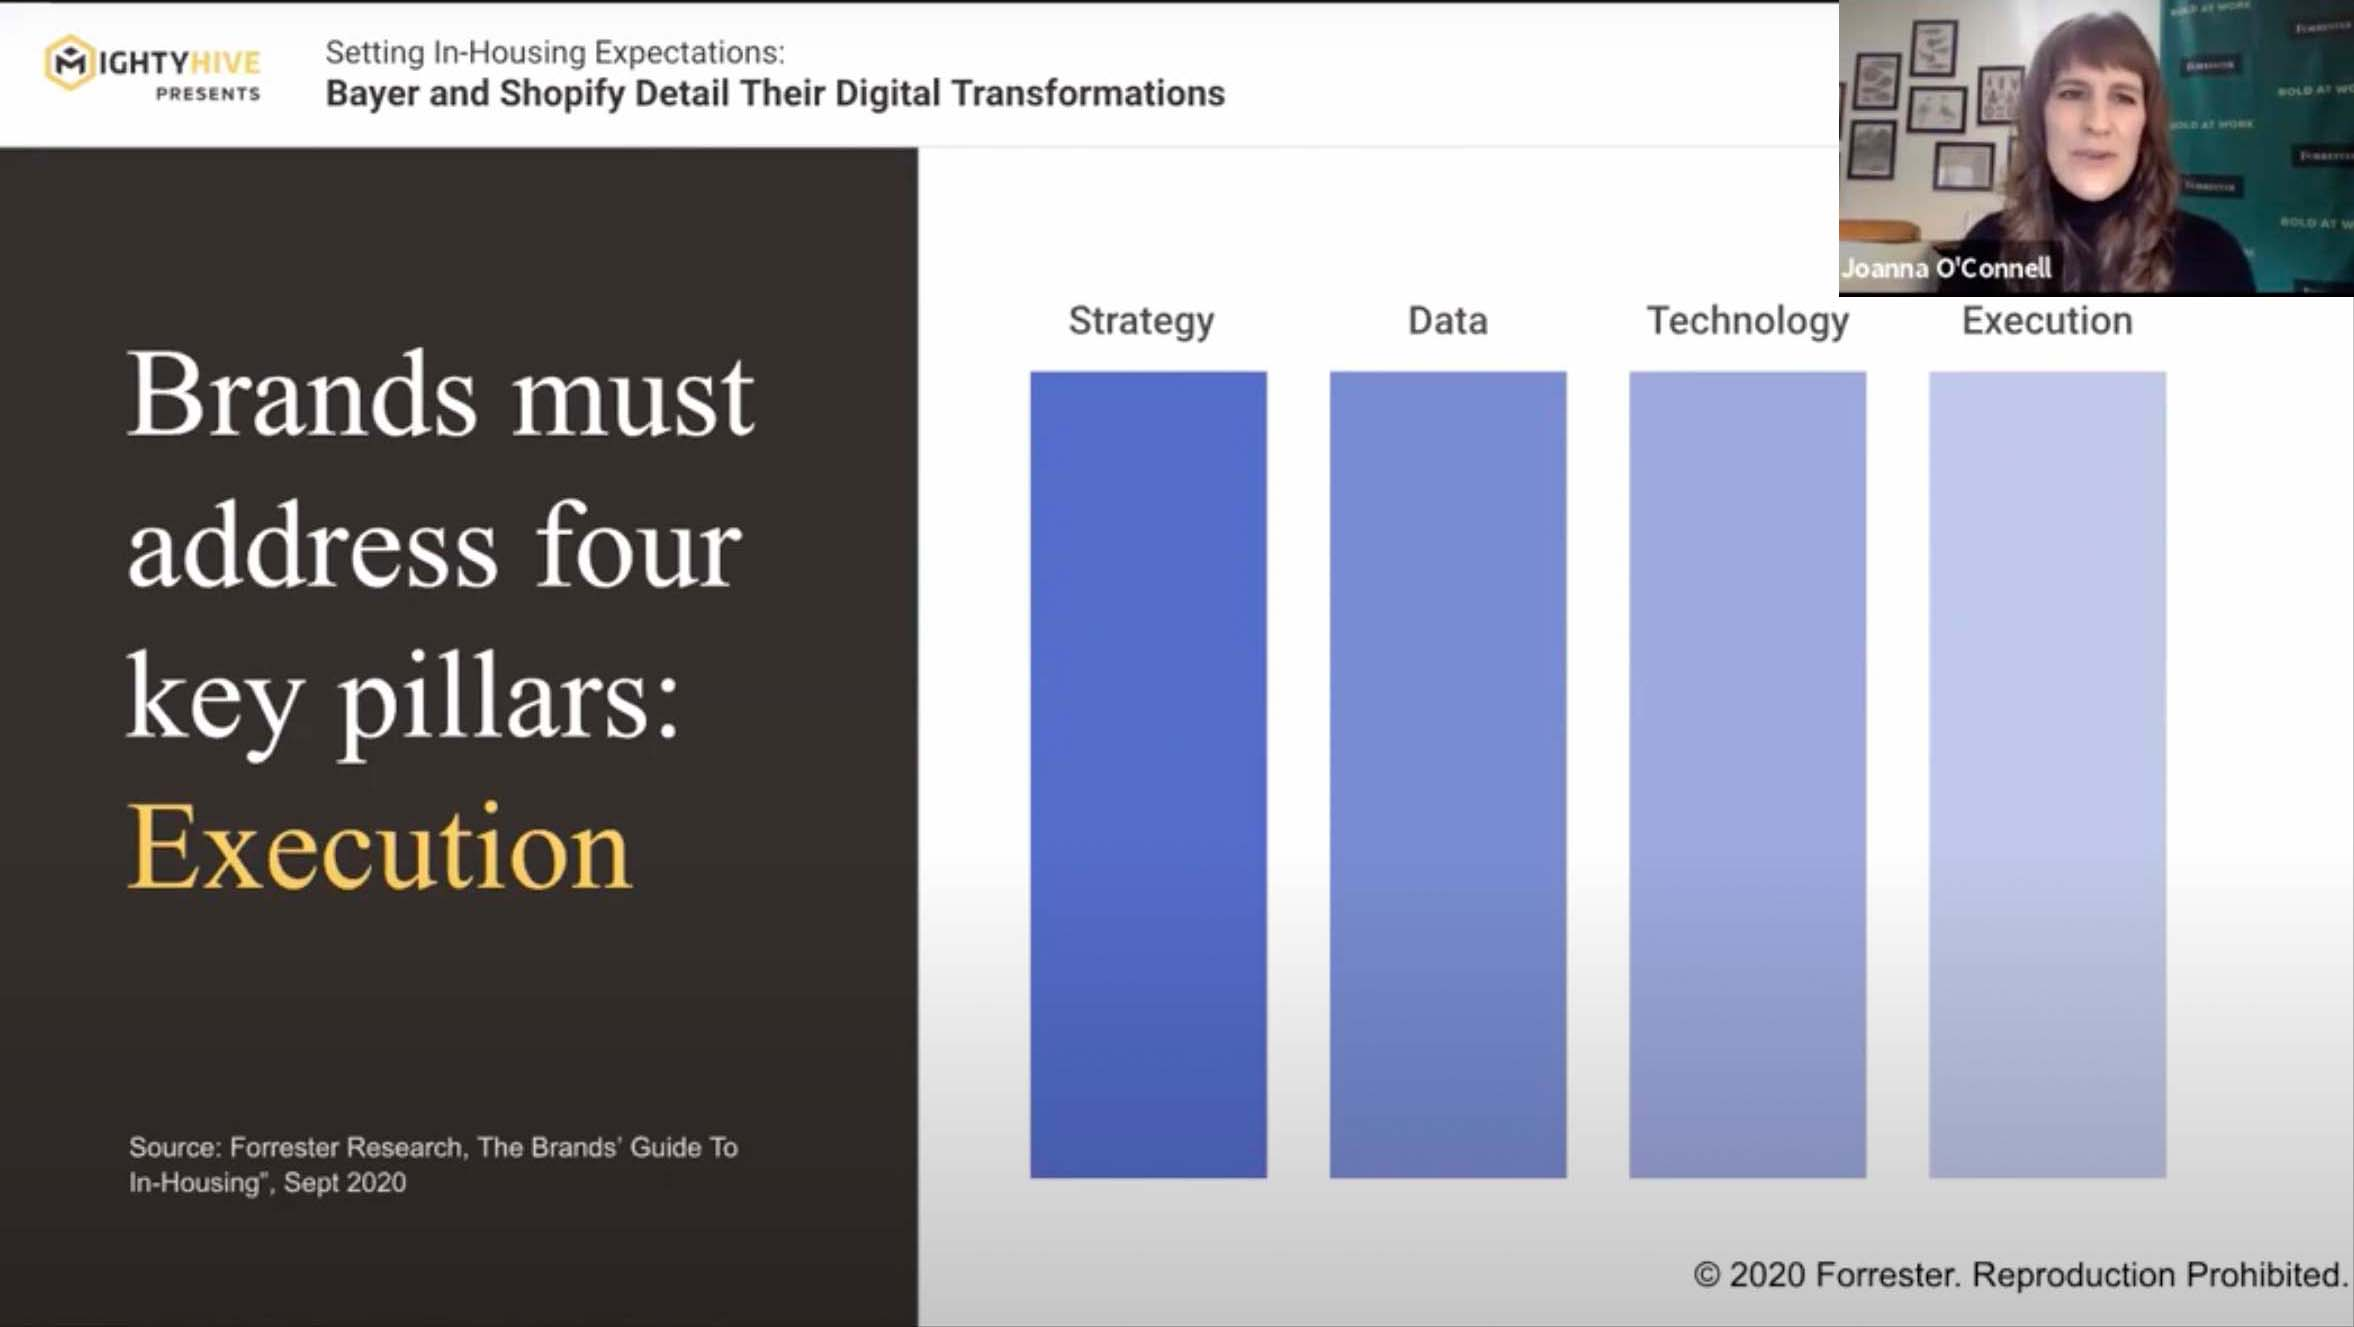 Joanna O'Connell explains the four key pillars of digital transformation